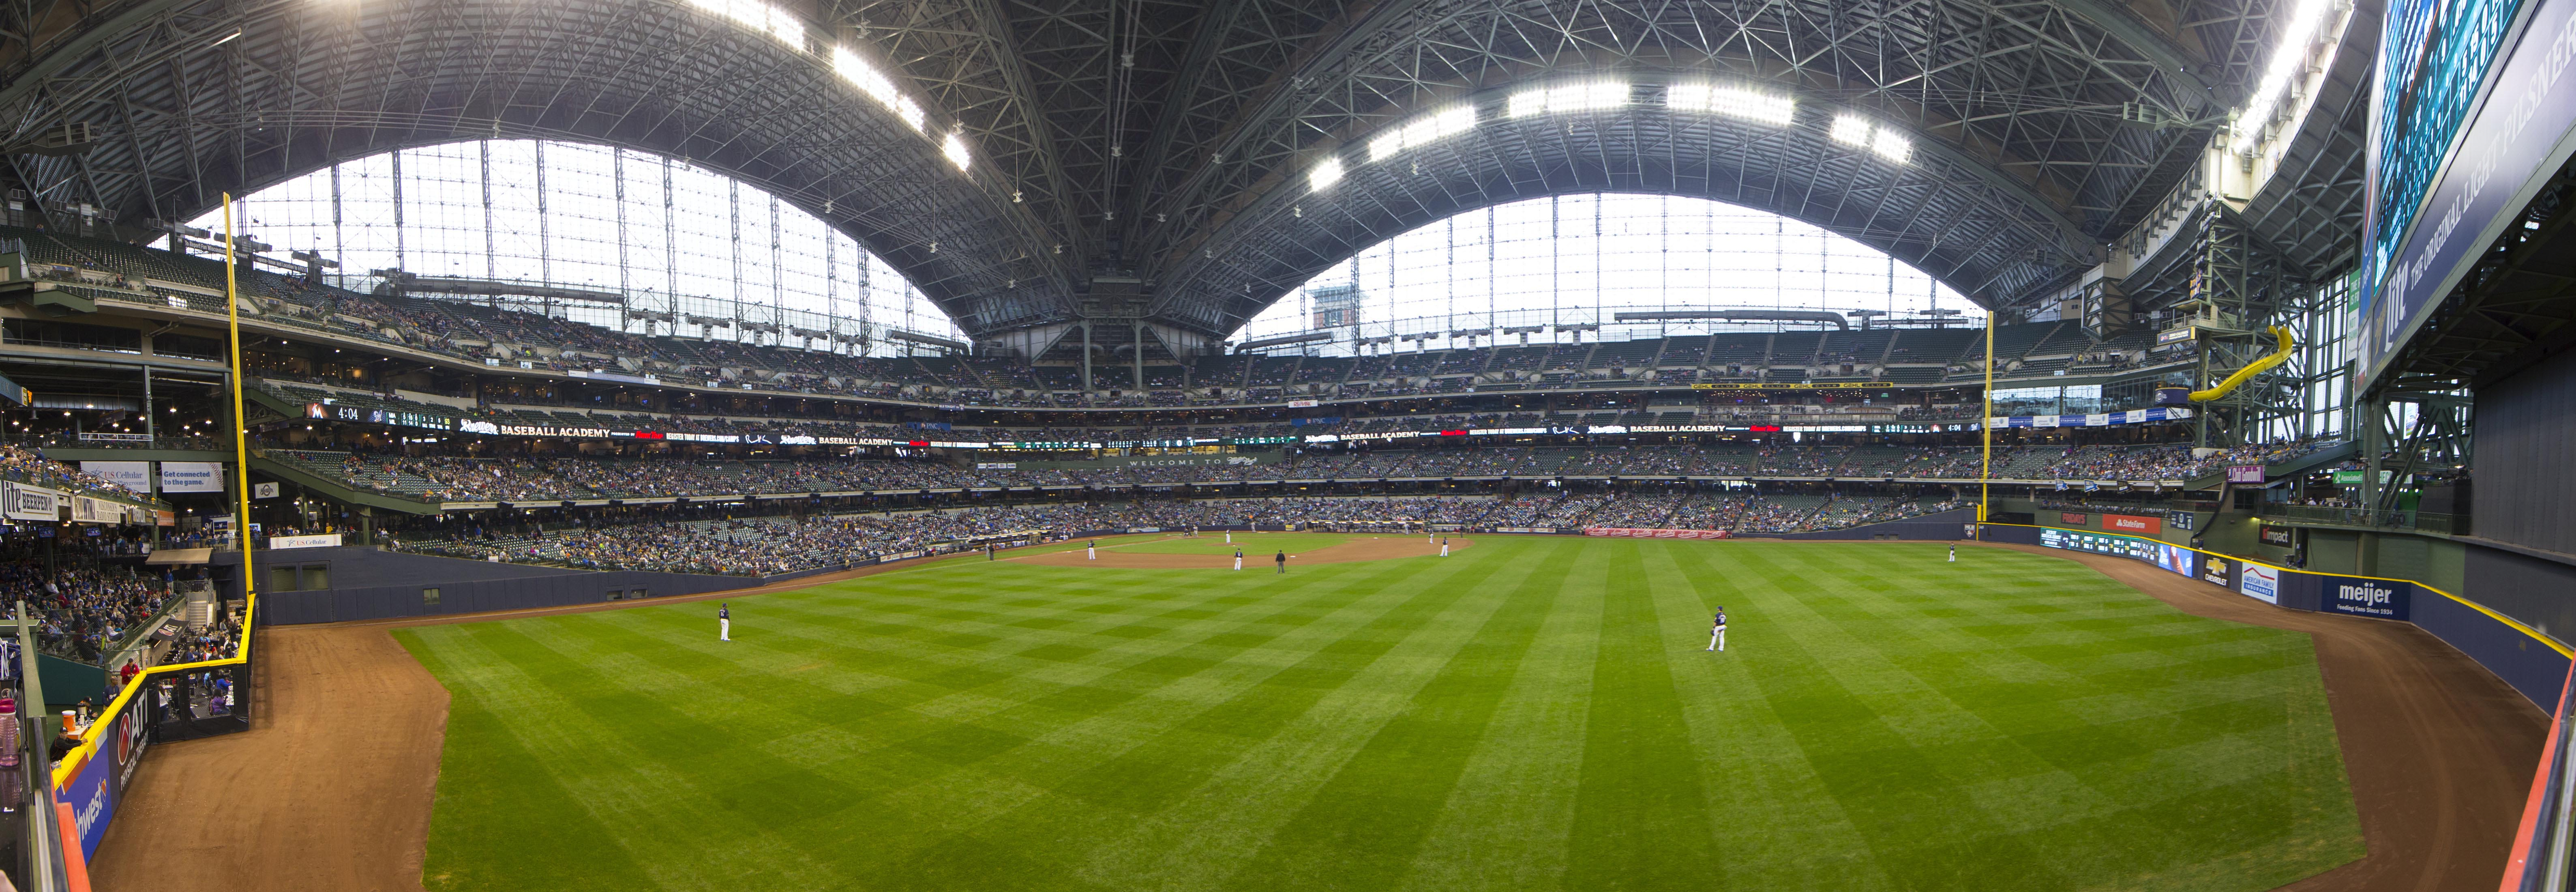 9277511-mlb-miami-marlins-at-milwaukee-brewers